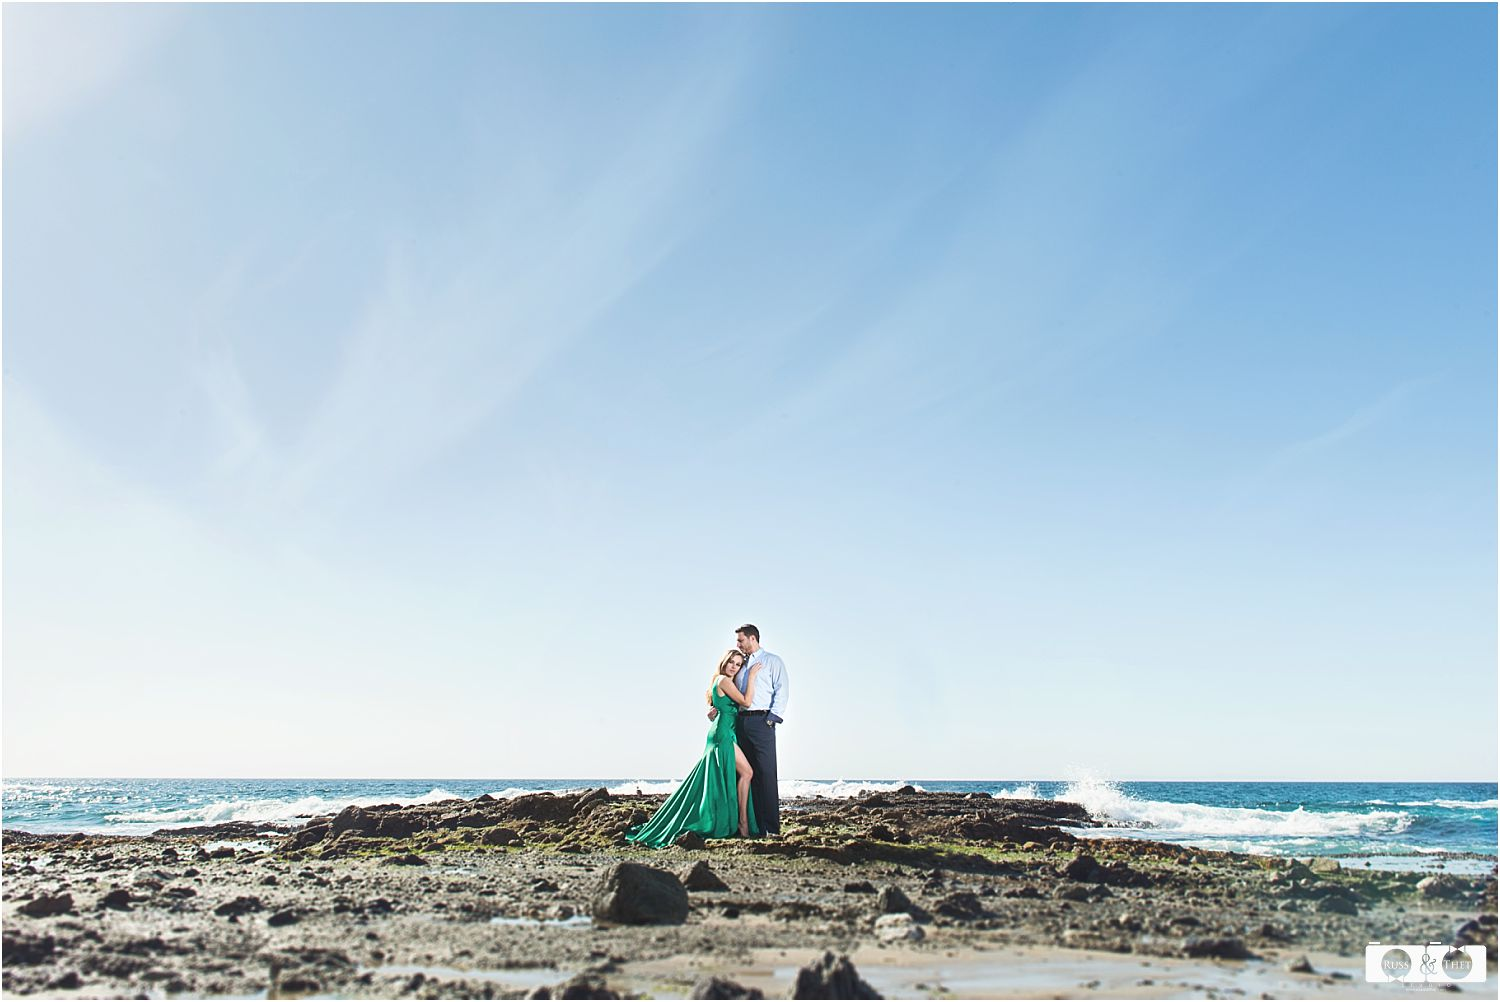 Victoria-Beach-Orange-County-Engagement-Session (2).jpg